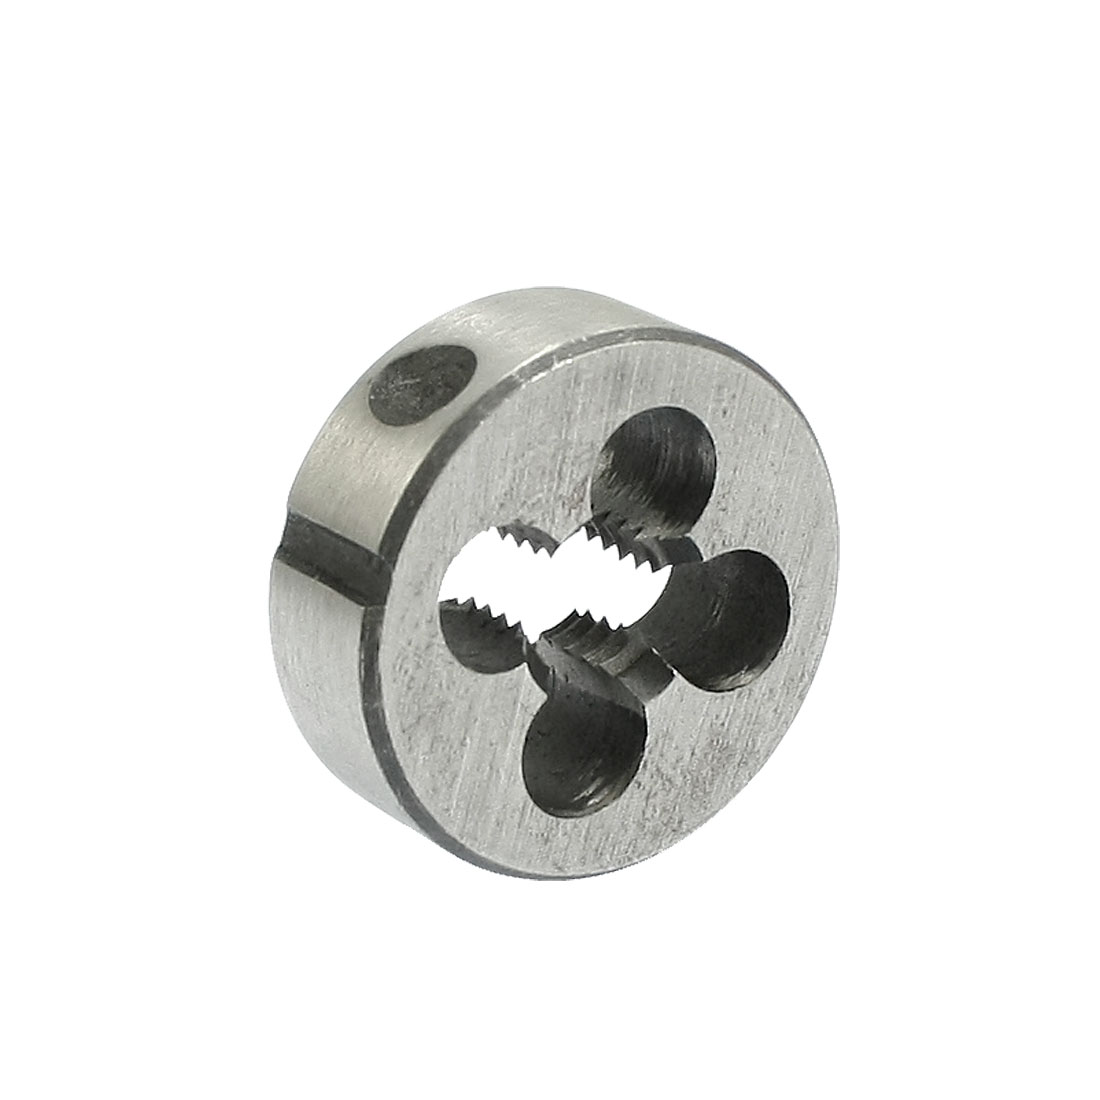 25mm Outside Dia 9mm Thick M8 Screw Thread Round Die Tool